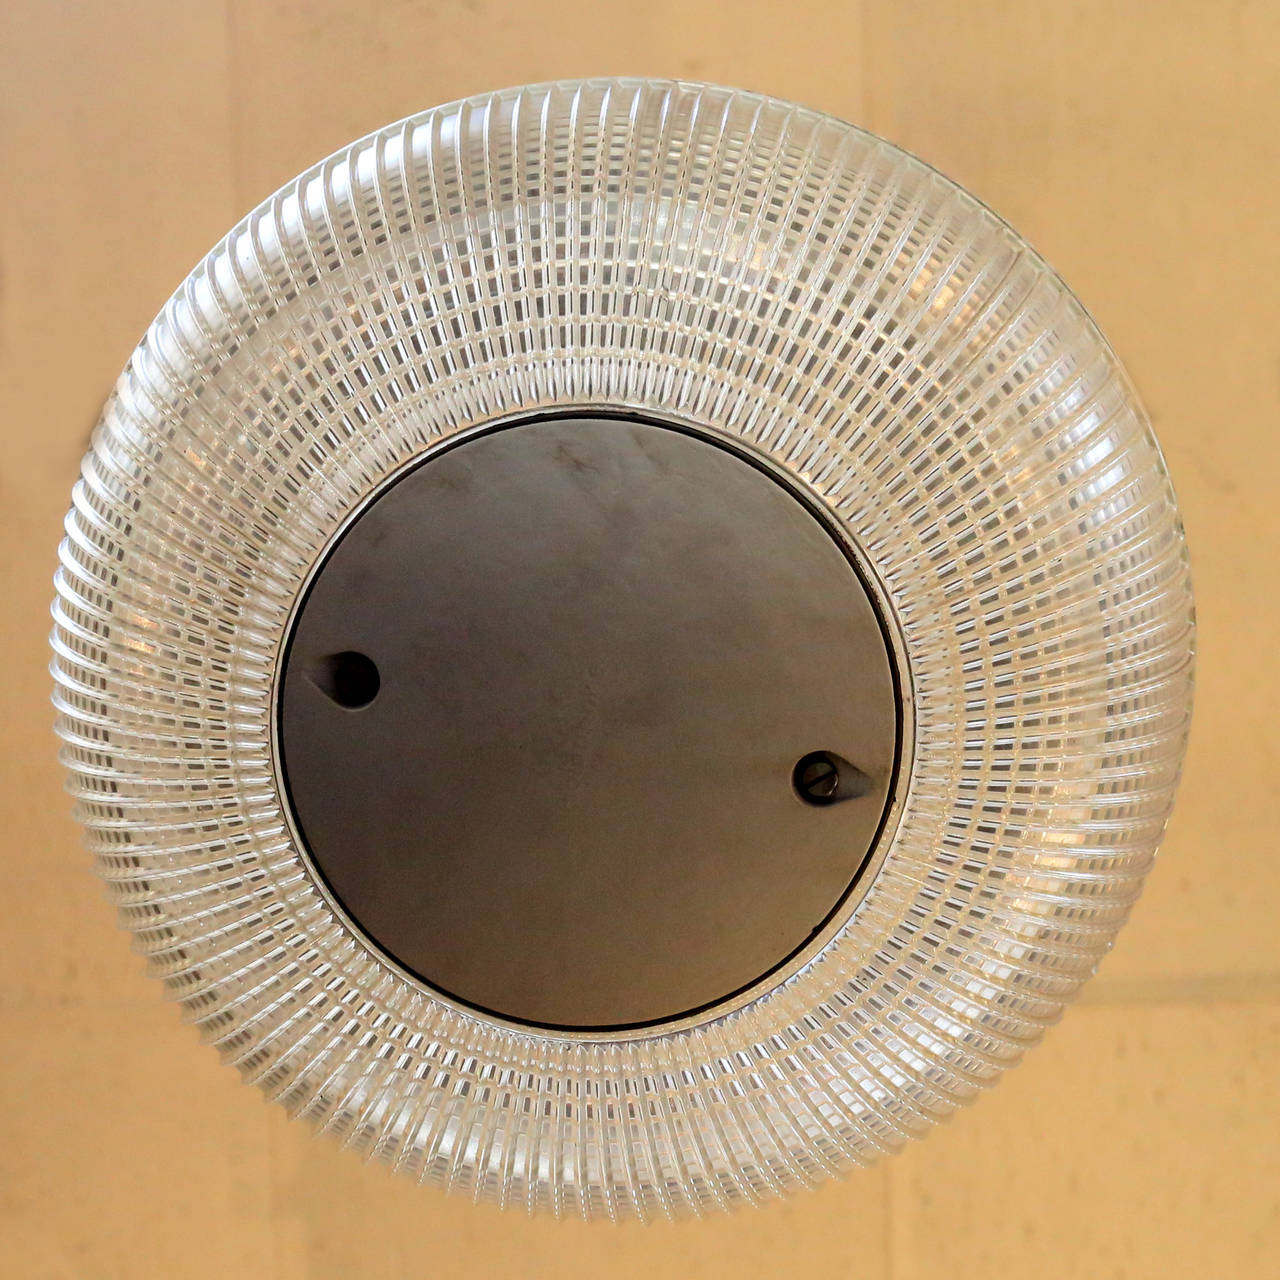 'Europhane' Holophane Pendant Light In Good Condition For Sale In London, GB